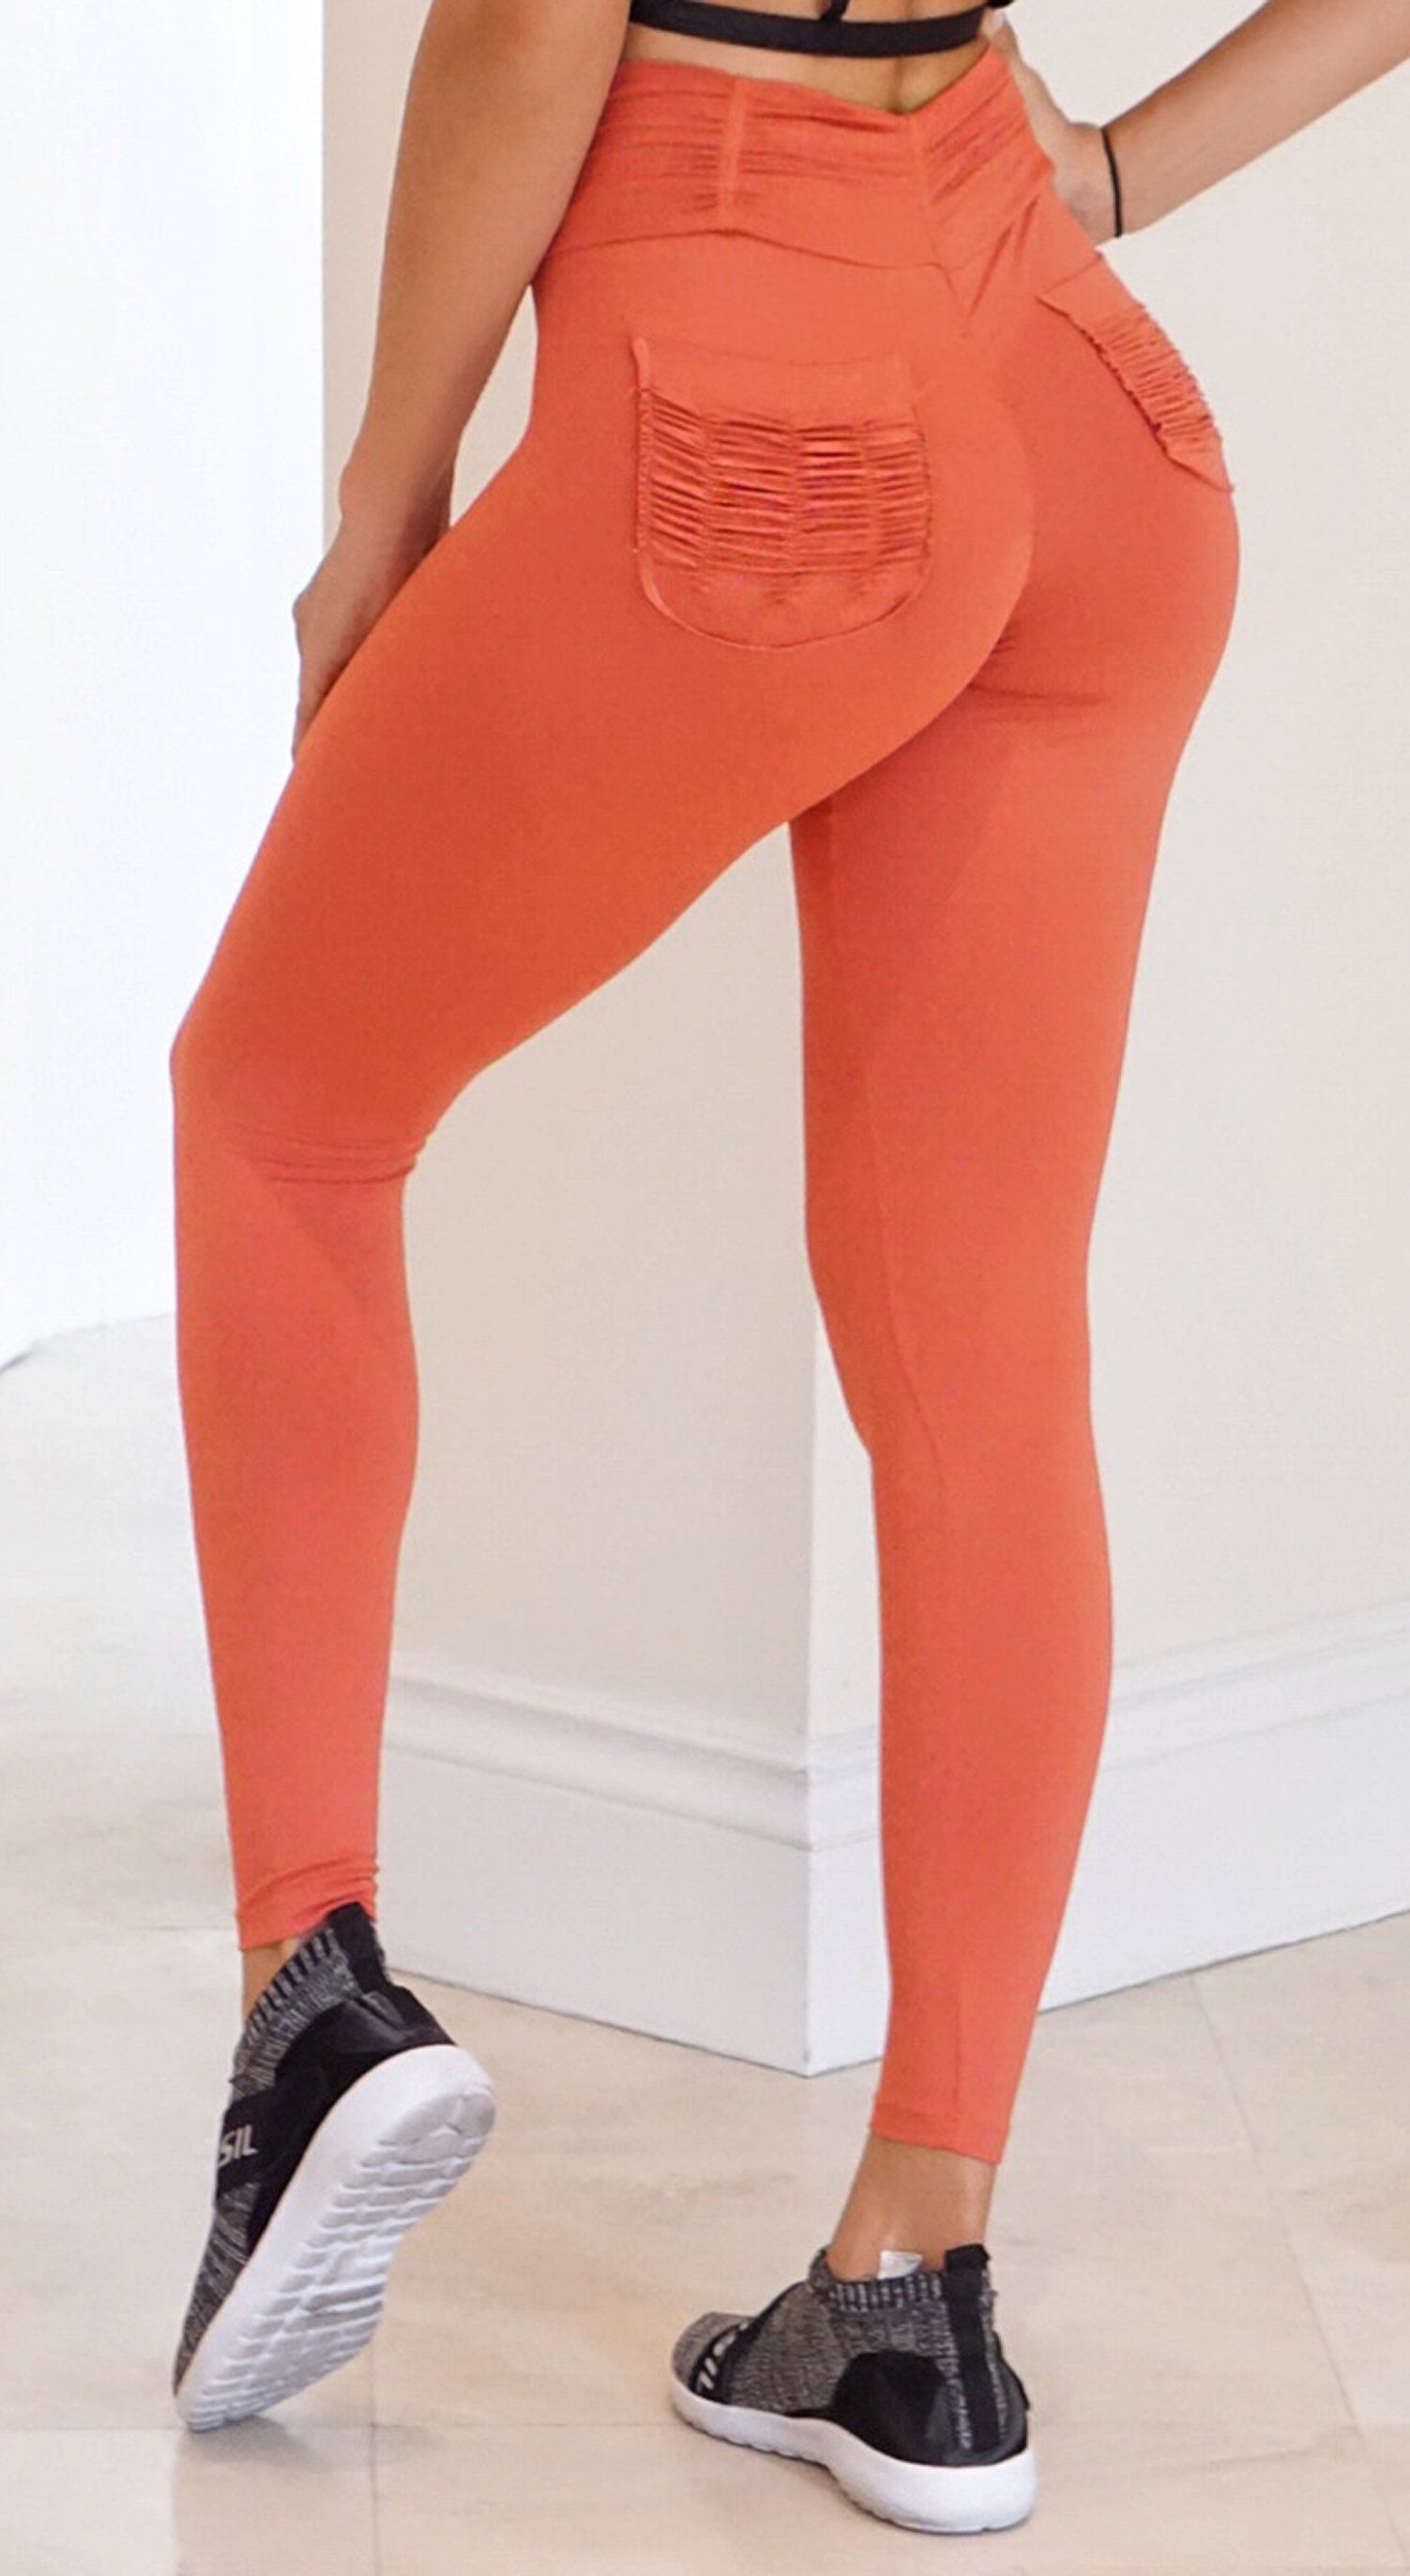 Brazilian Workout Legging - Booty Up Pockets Orange